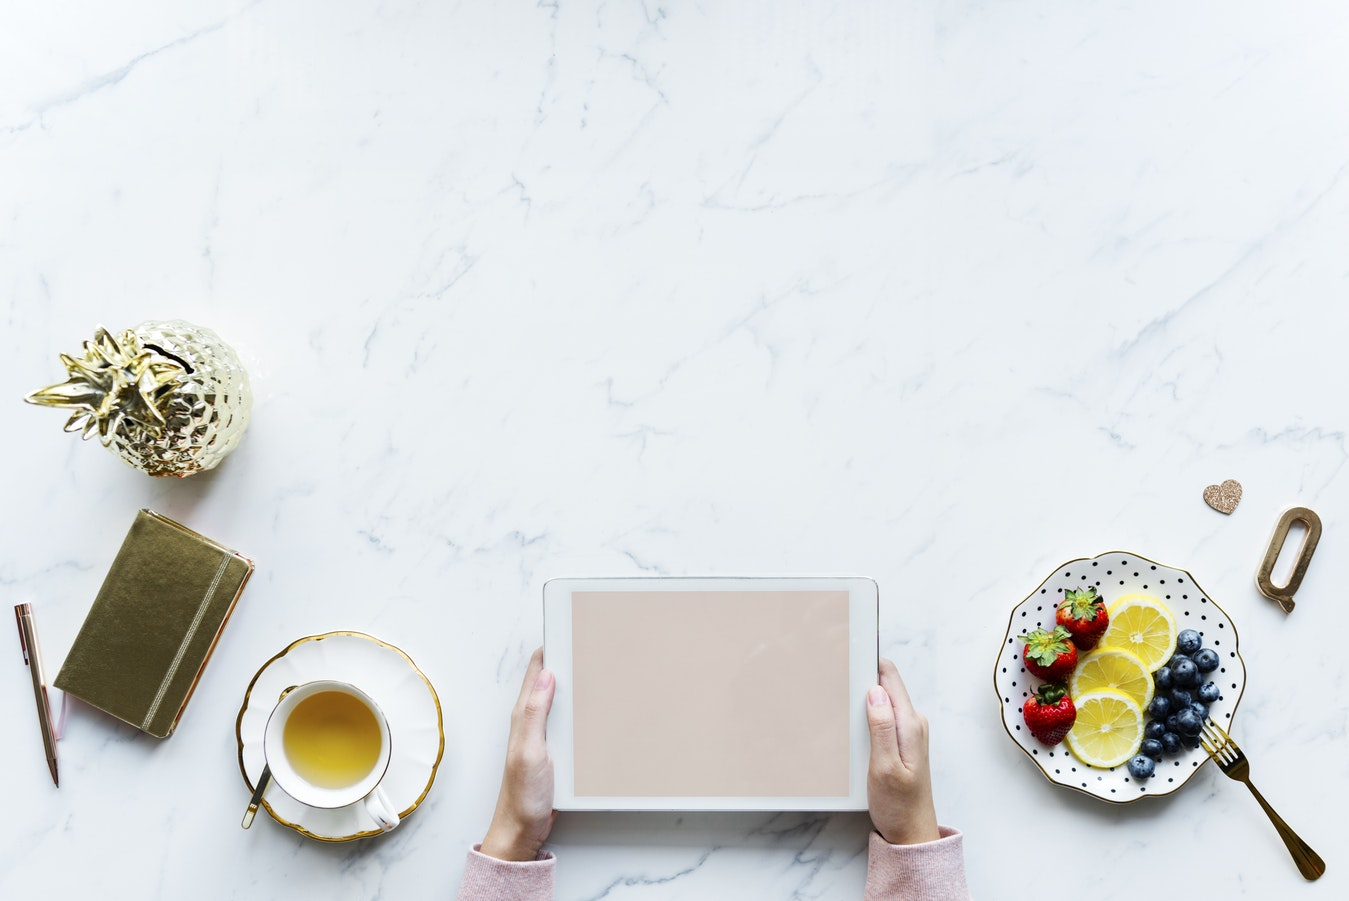 An individual using an Ipad on a table next to fruit and a cup of tea